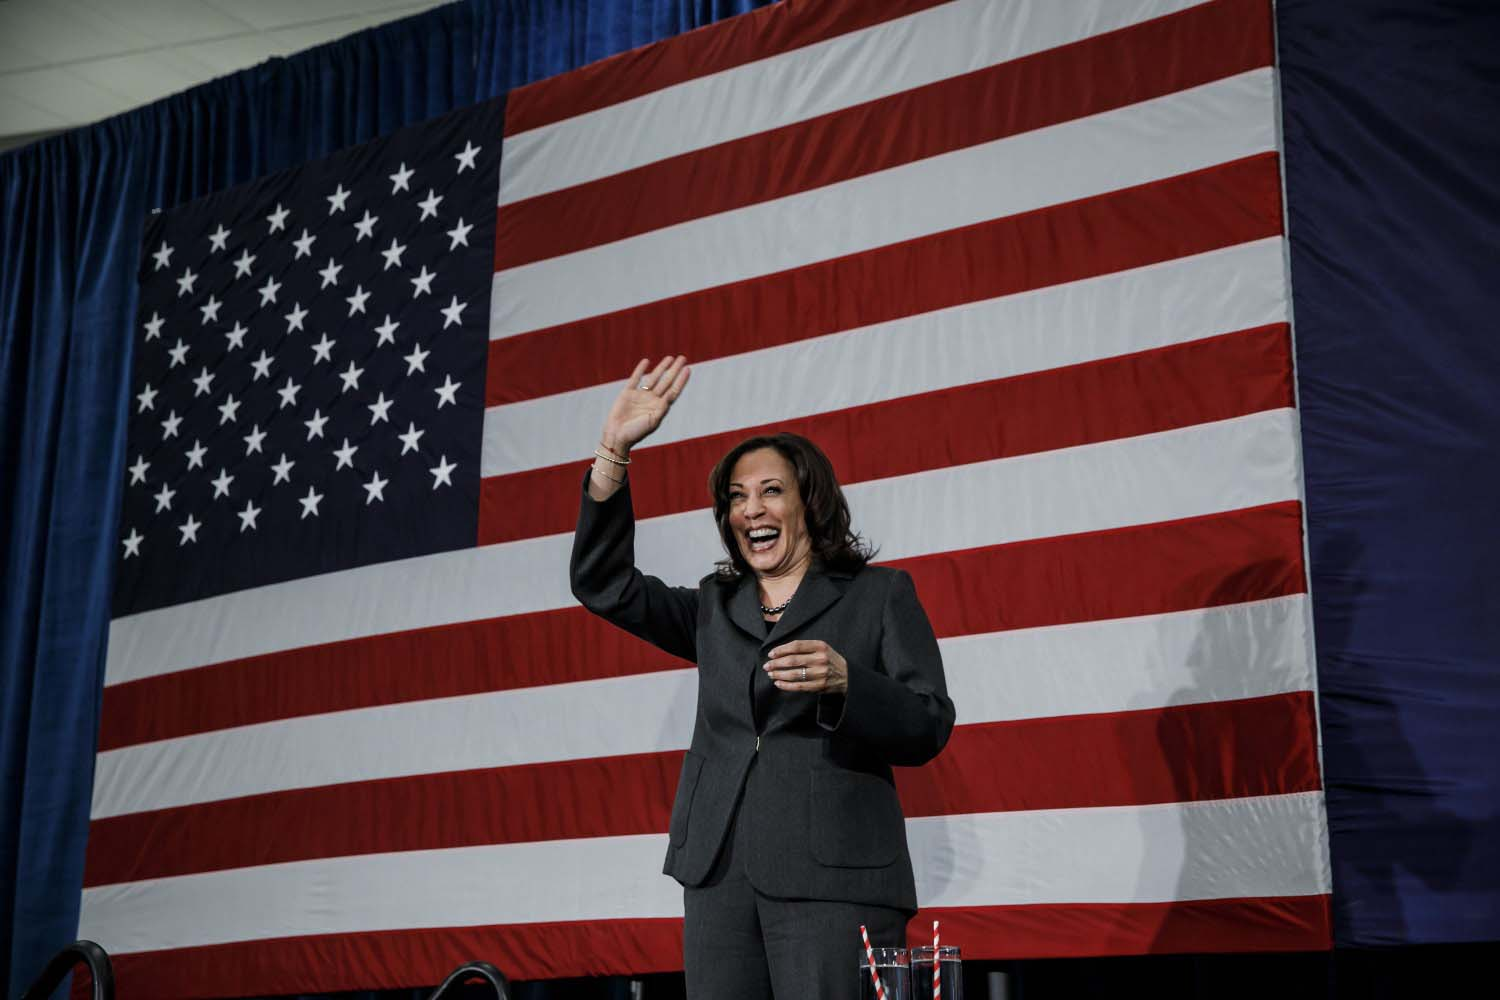 Sen. Kamala Harris, D-Calif., greets the crowd at a campaign rally at the FFA Enrichment Center in Ankeny, Iowa, on Feb. 23.